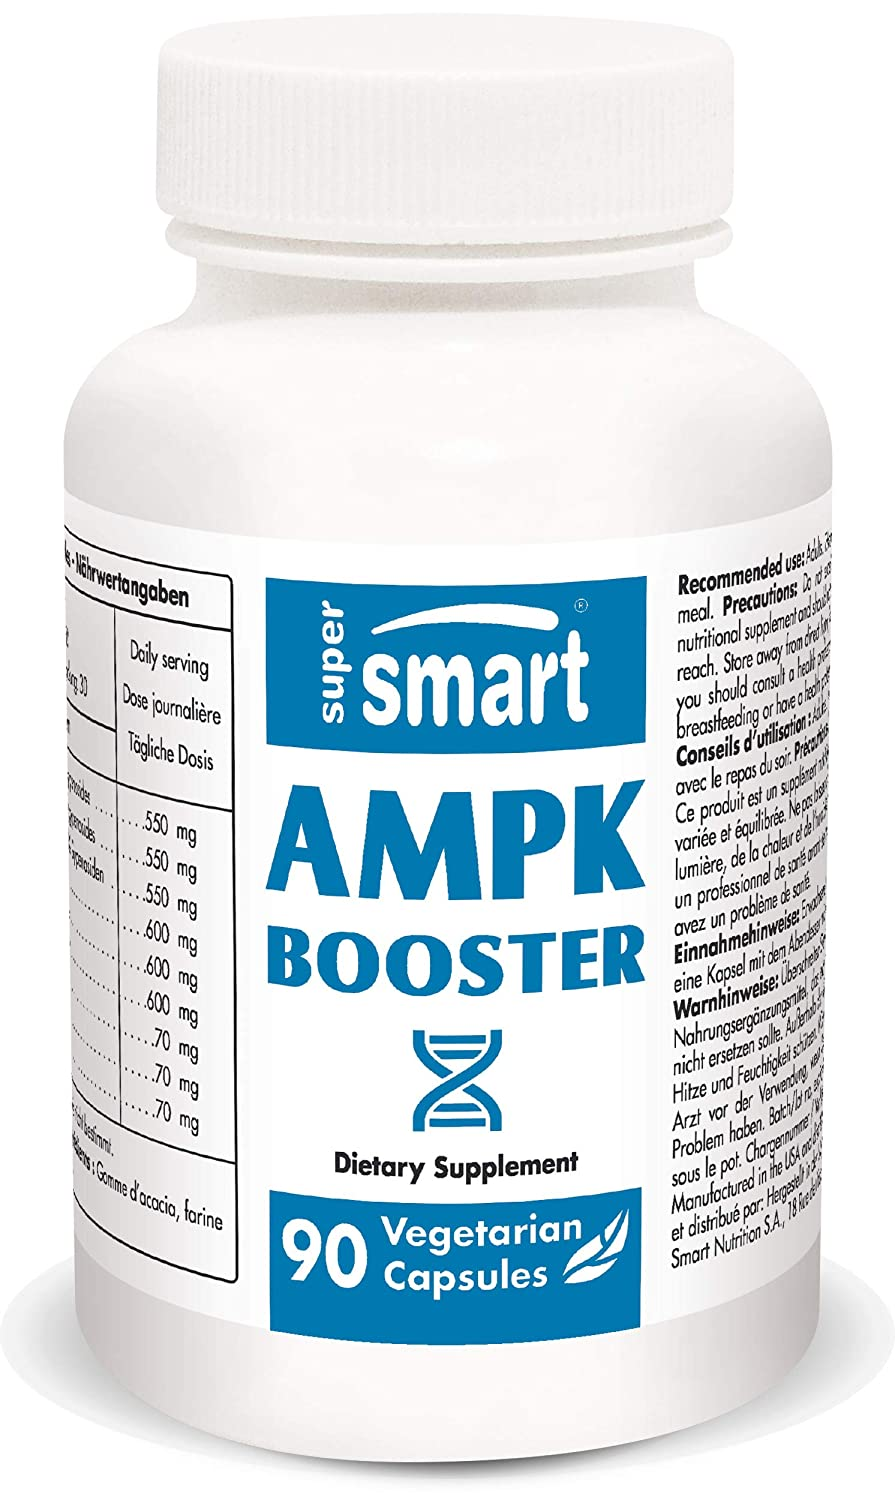 Supersmart - antiage - ampk Booster - 90 gel Veg - la Enzyme ...